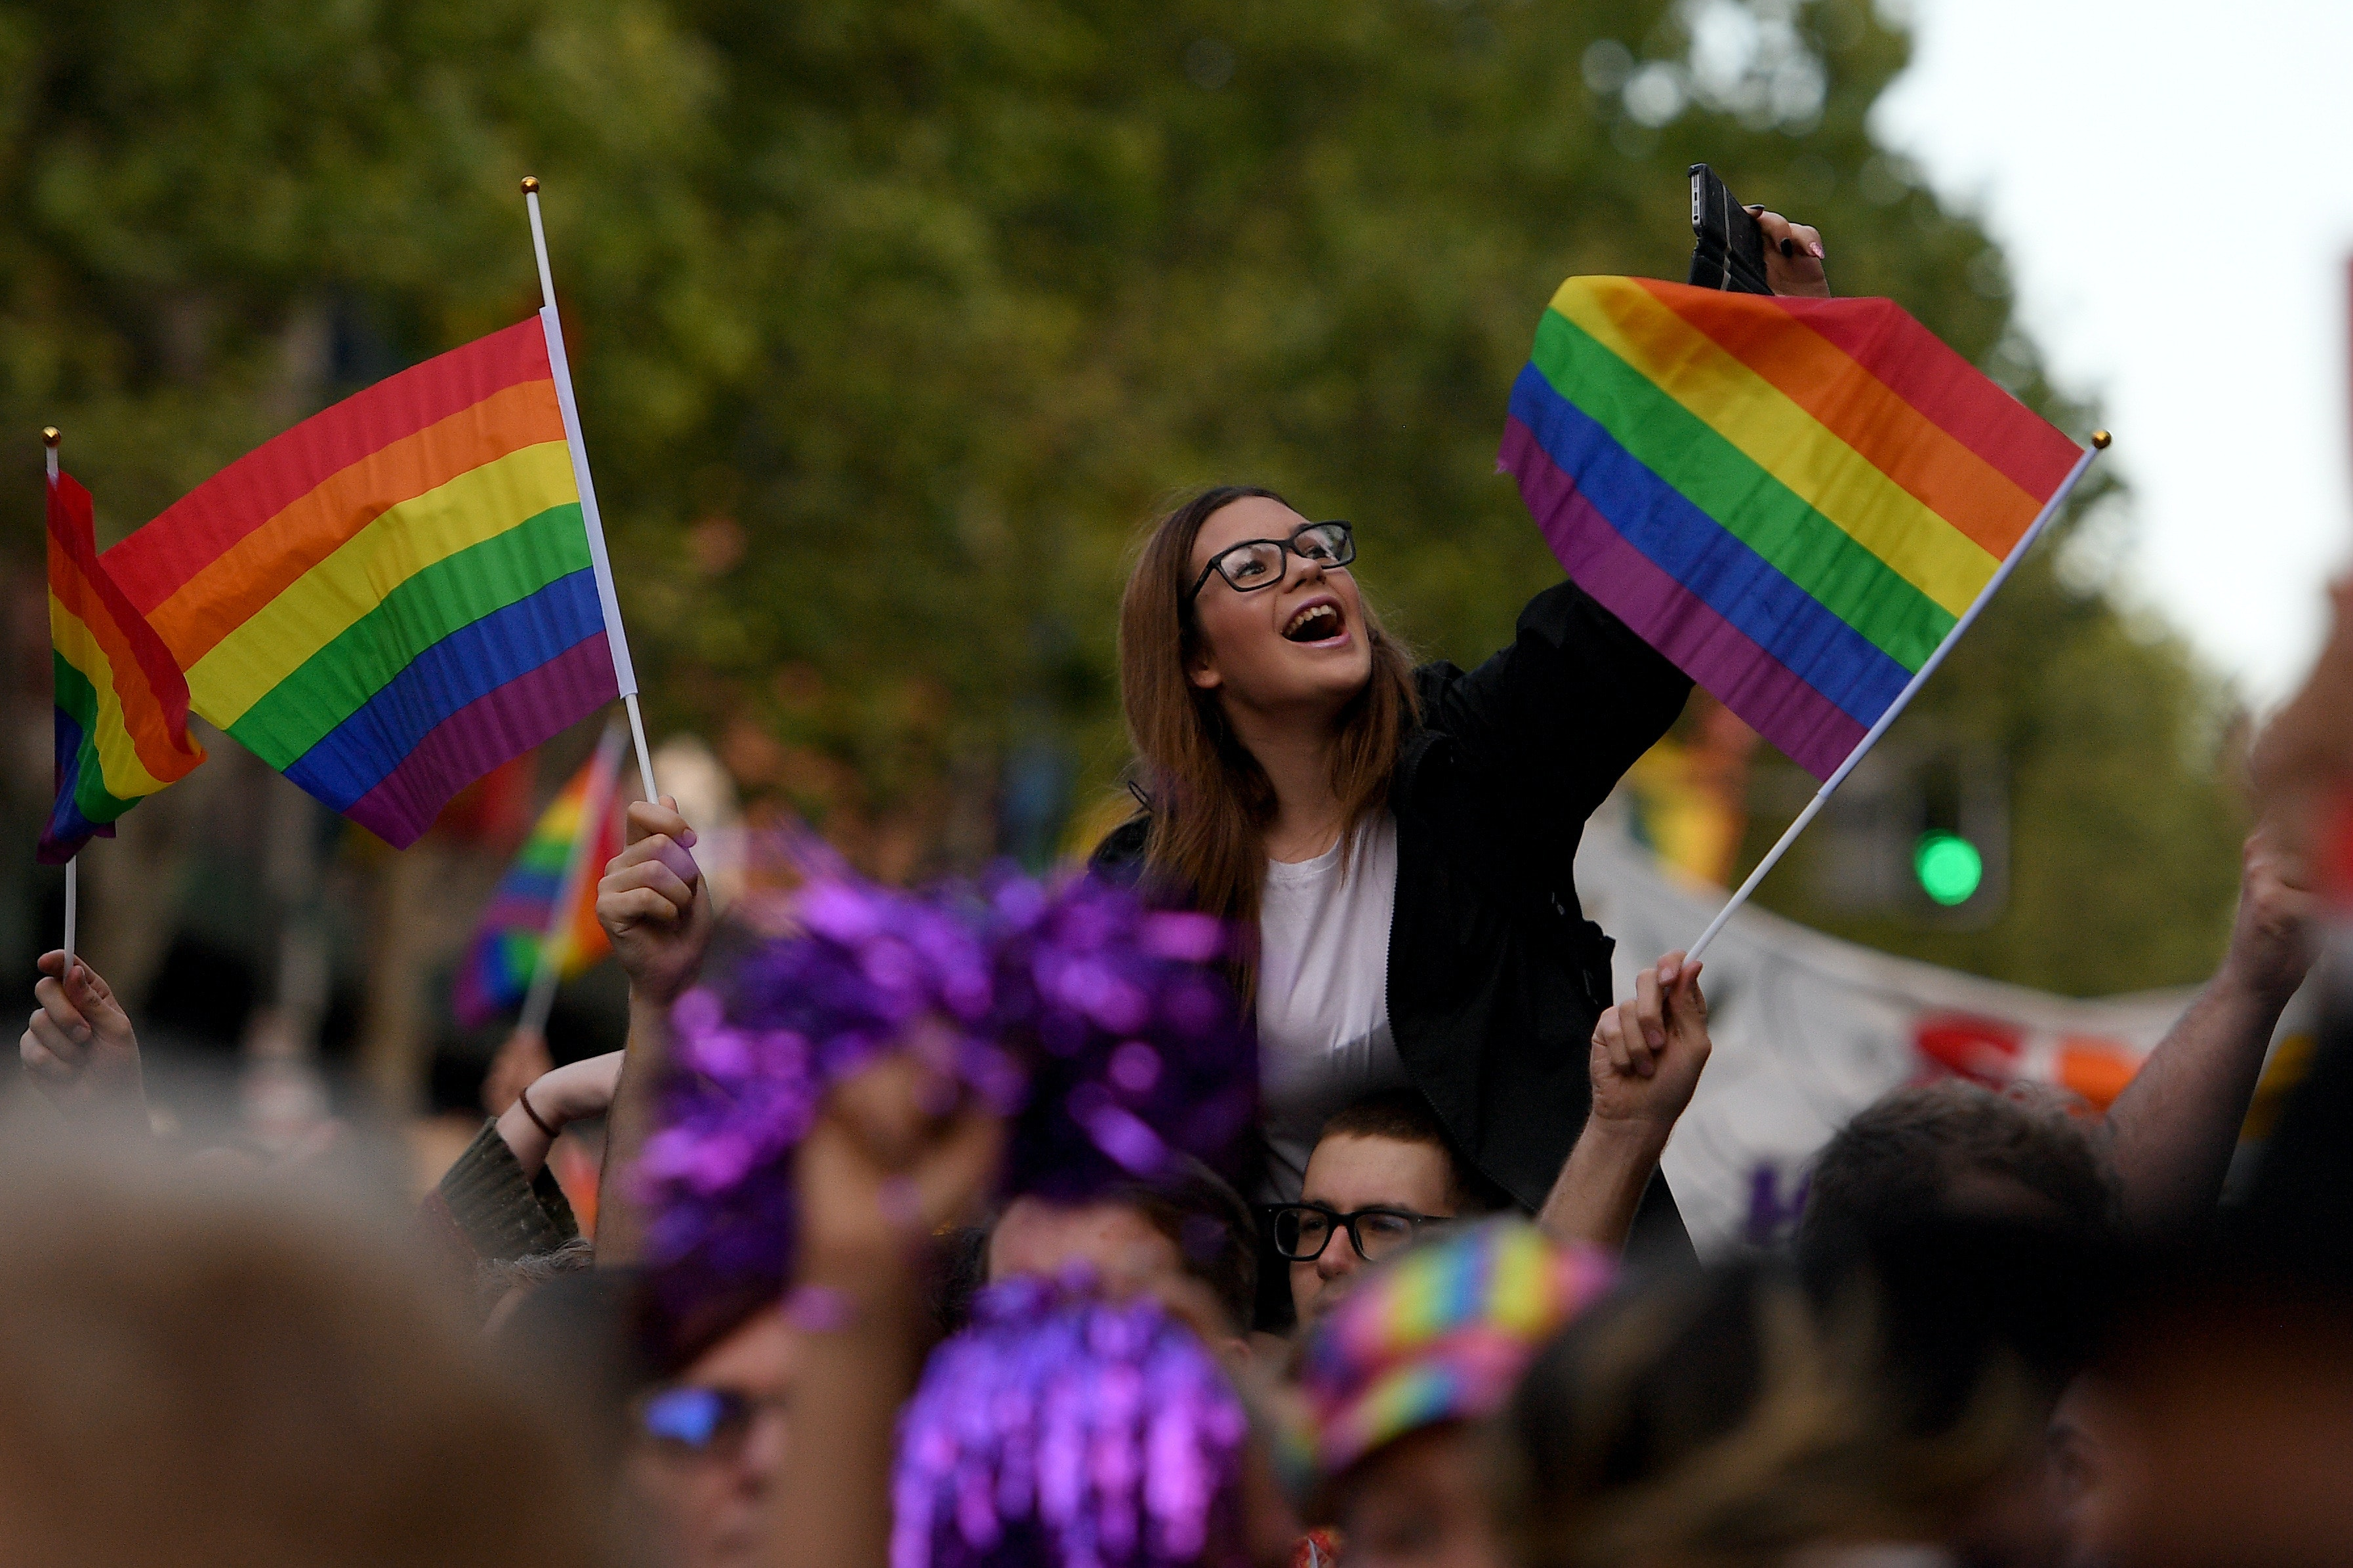 Australia has finally achieved marriage equality, but there's a lot more to be done on LGBTI rights